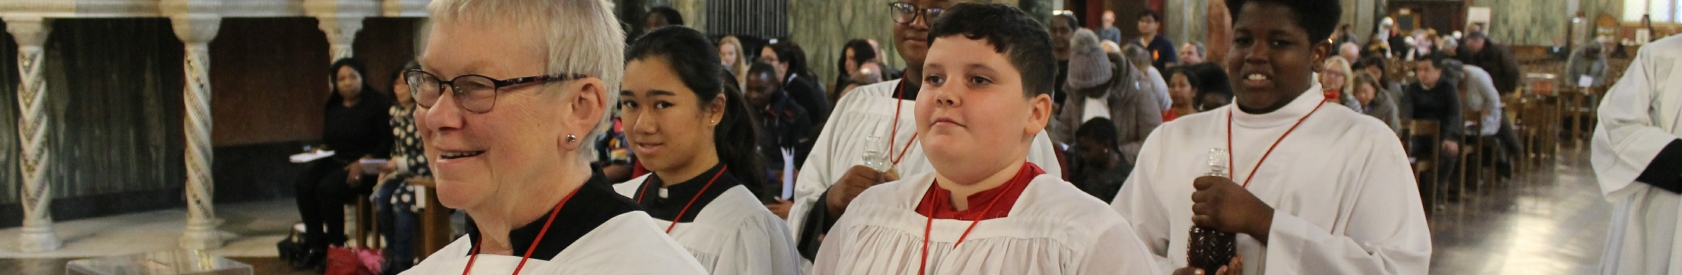 Altar Servers/The Guild of St Stephen